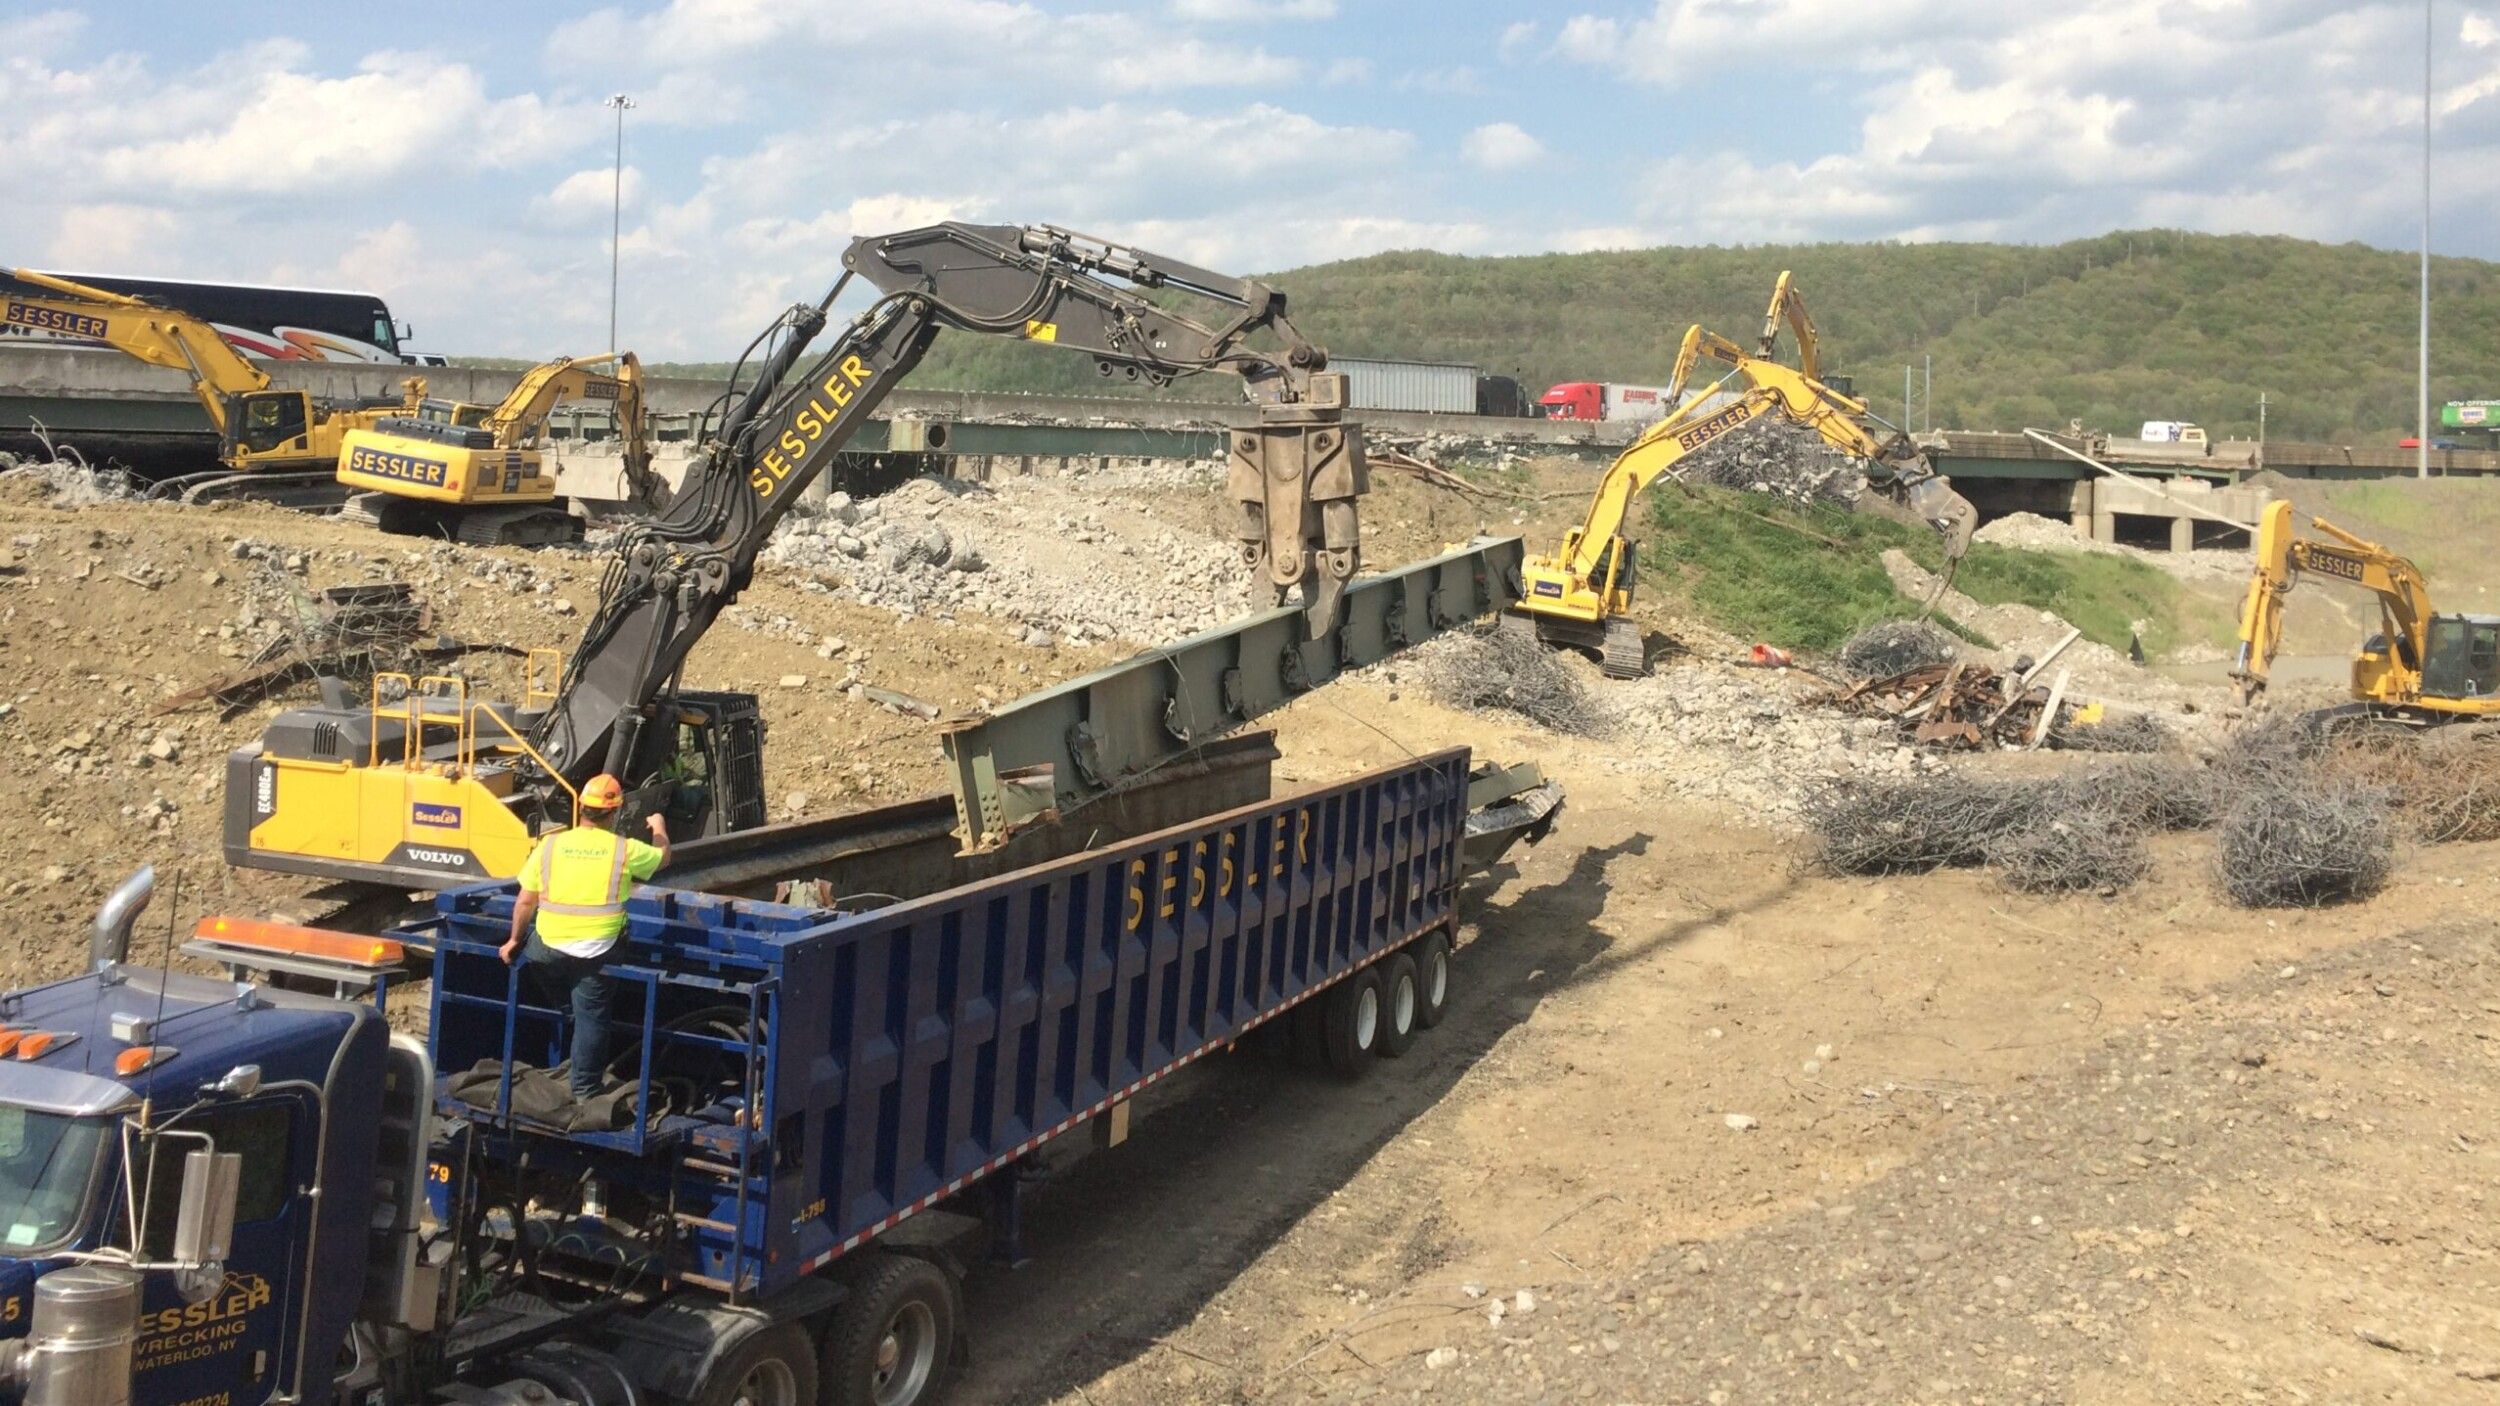 81 Site Work Asset Recovery